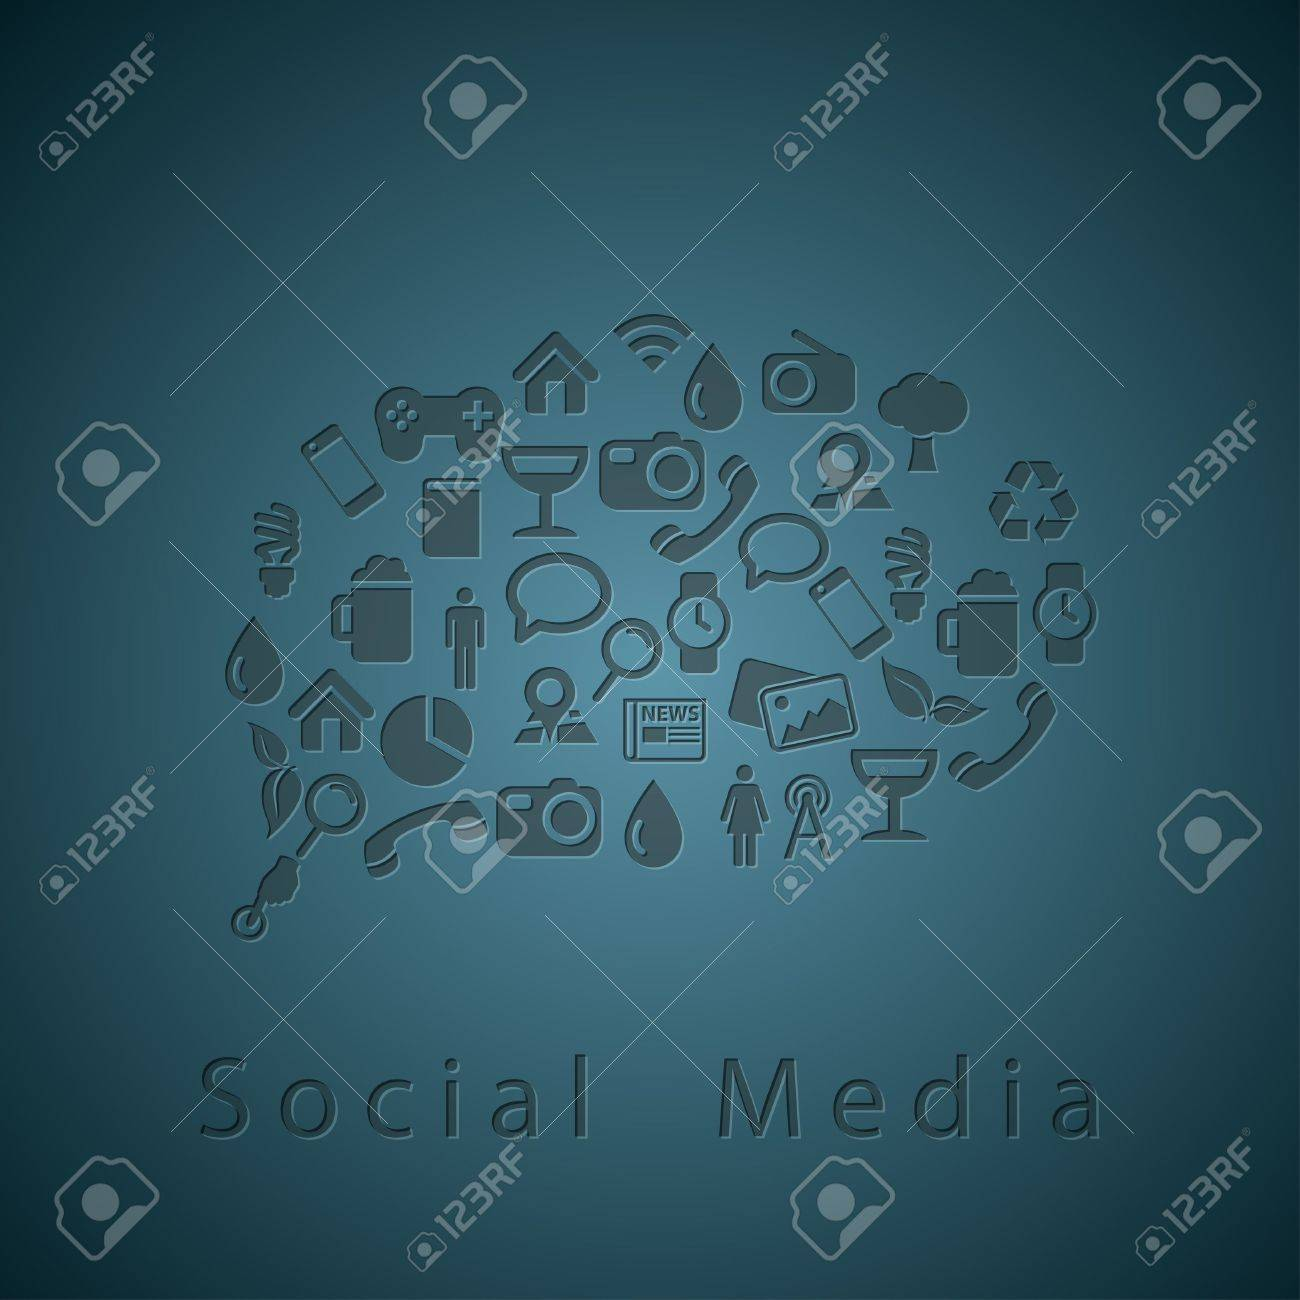 Social media icons texture in chat bubble Stock Vector - 15527091